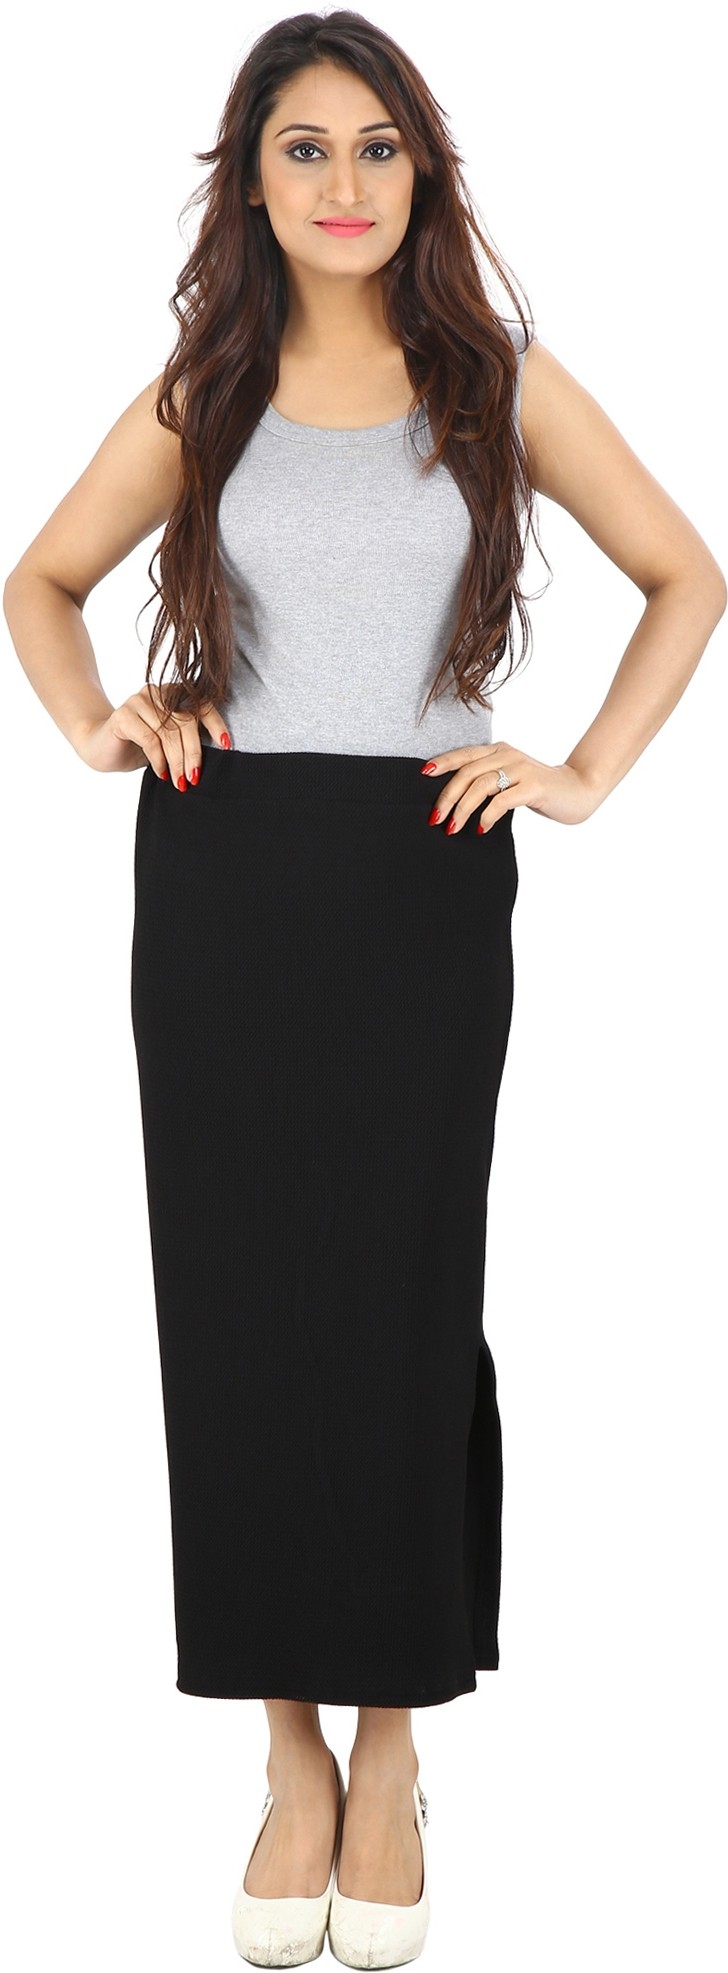 Deals - Gwalior - Skirts <br> People, Tokyo Talkies & more<br> Category - clothing<br> Business - Flipkart.com